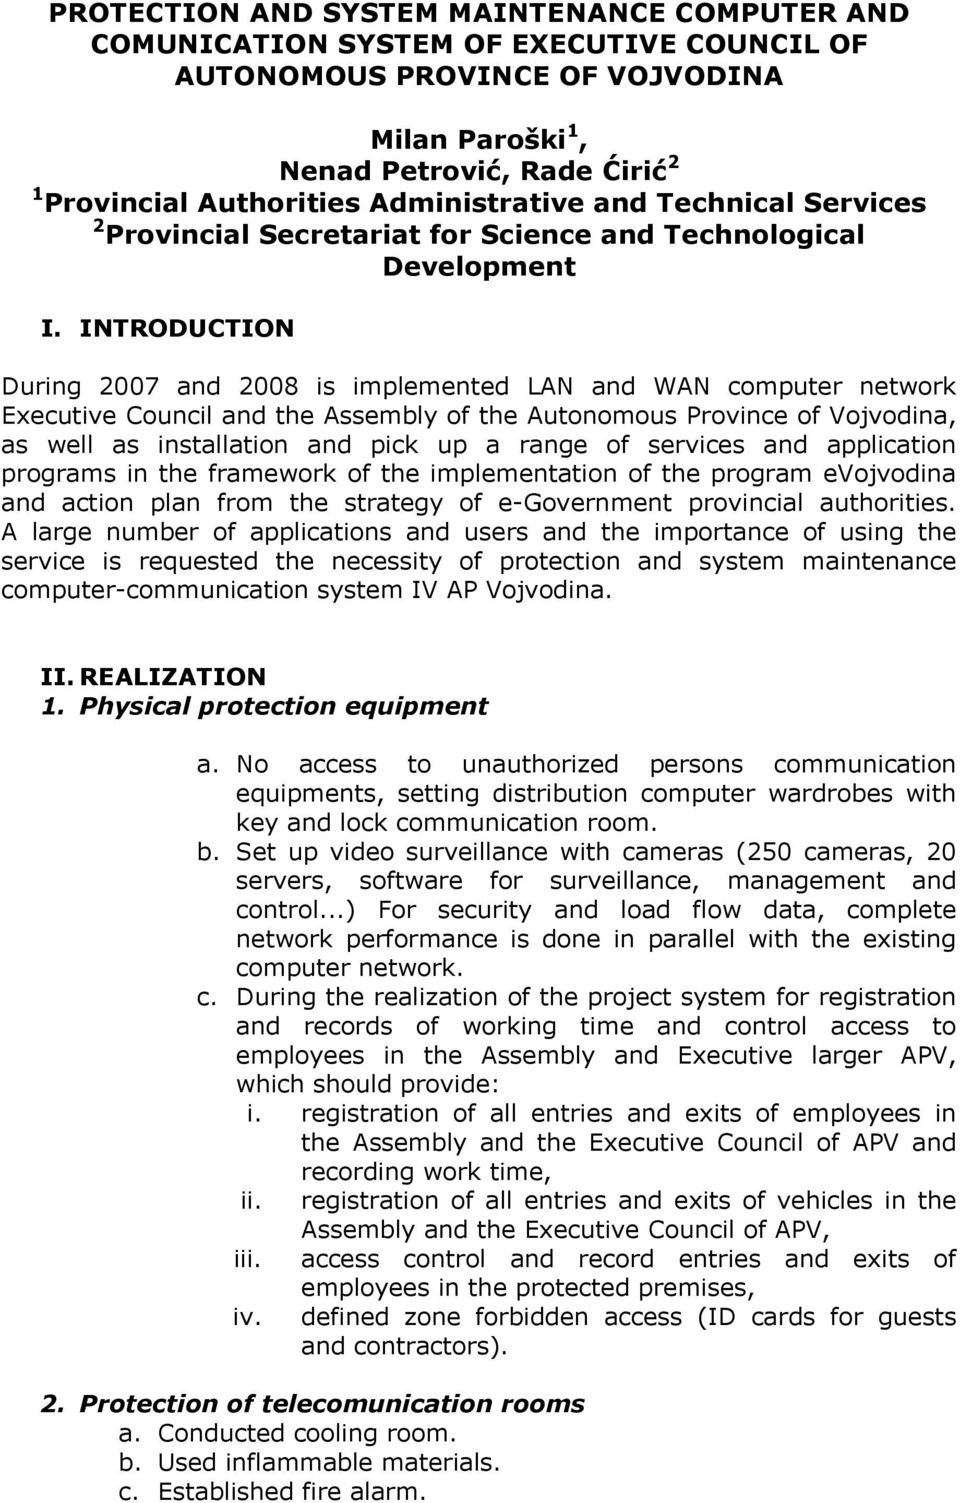 INTRODUCTION During 2007 and 2008 is implemented LAN and WAN computer network Executive Council and the Assembly of the Autonomous Province of Vojvodina, as well as installation and pick up a range